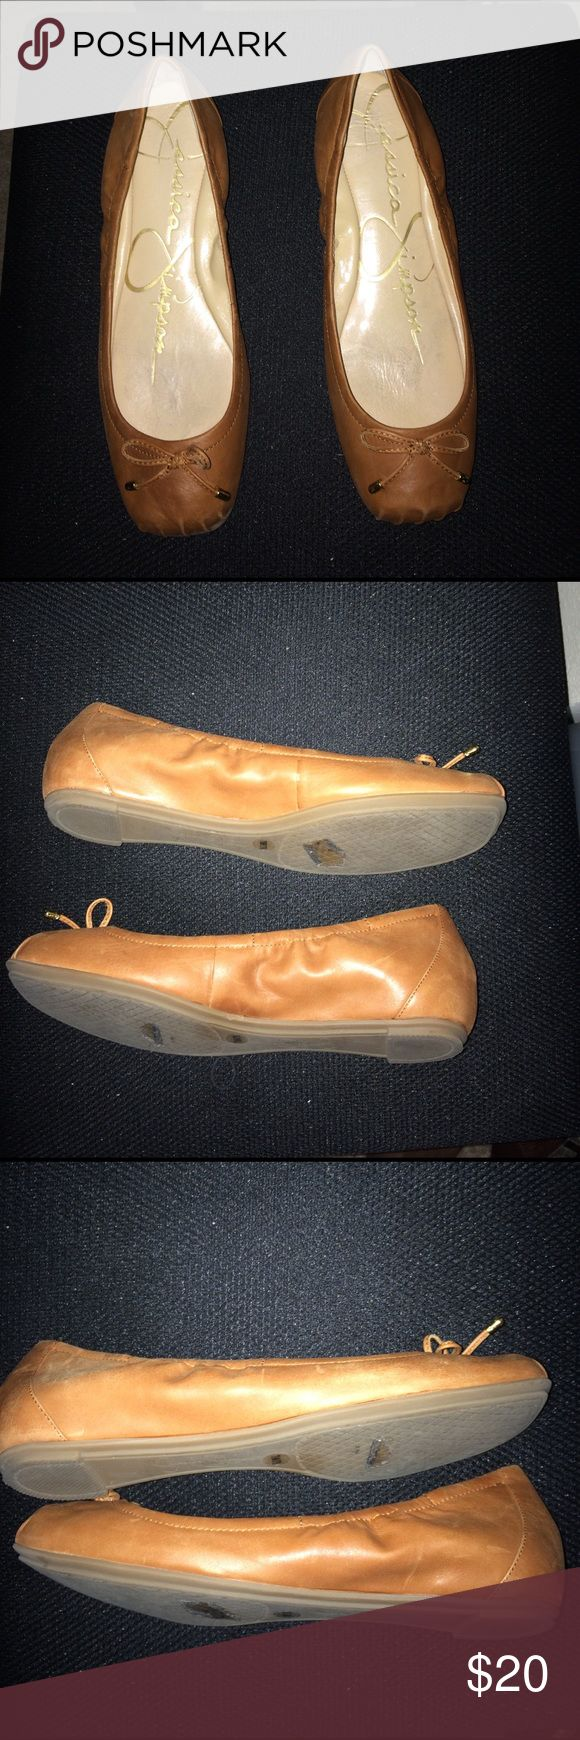 Shoes Jessica Simpson Tam Leather Ballerina shoes. Im Good worn condition.  Soft leather show variation within the texture of the leather. Only worn twice. Jessica Simpson Shoes Flats & Loafers